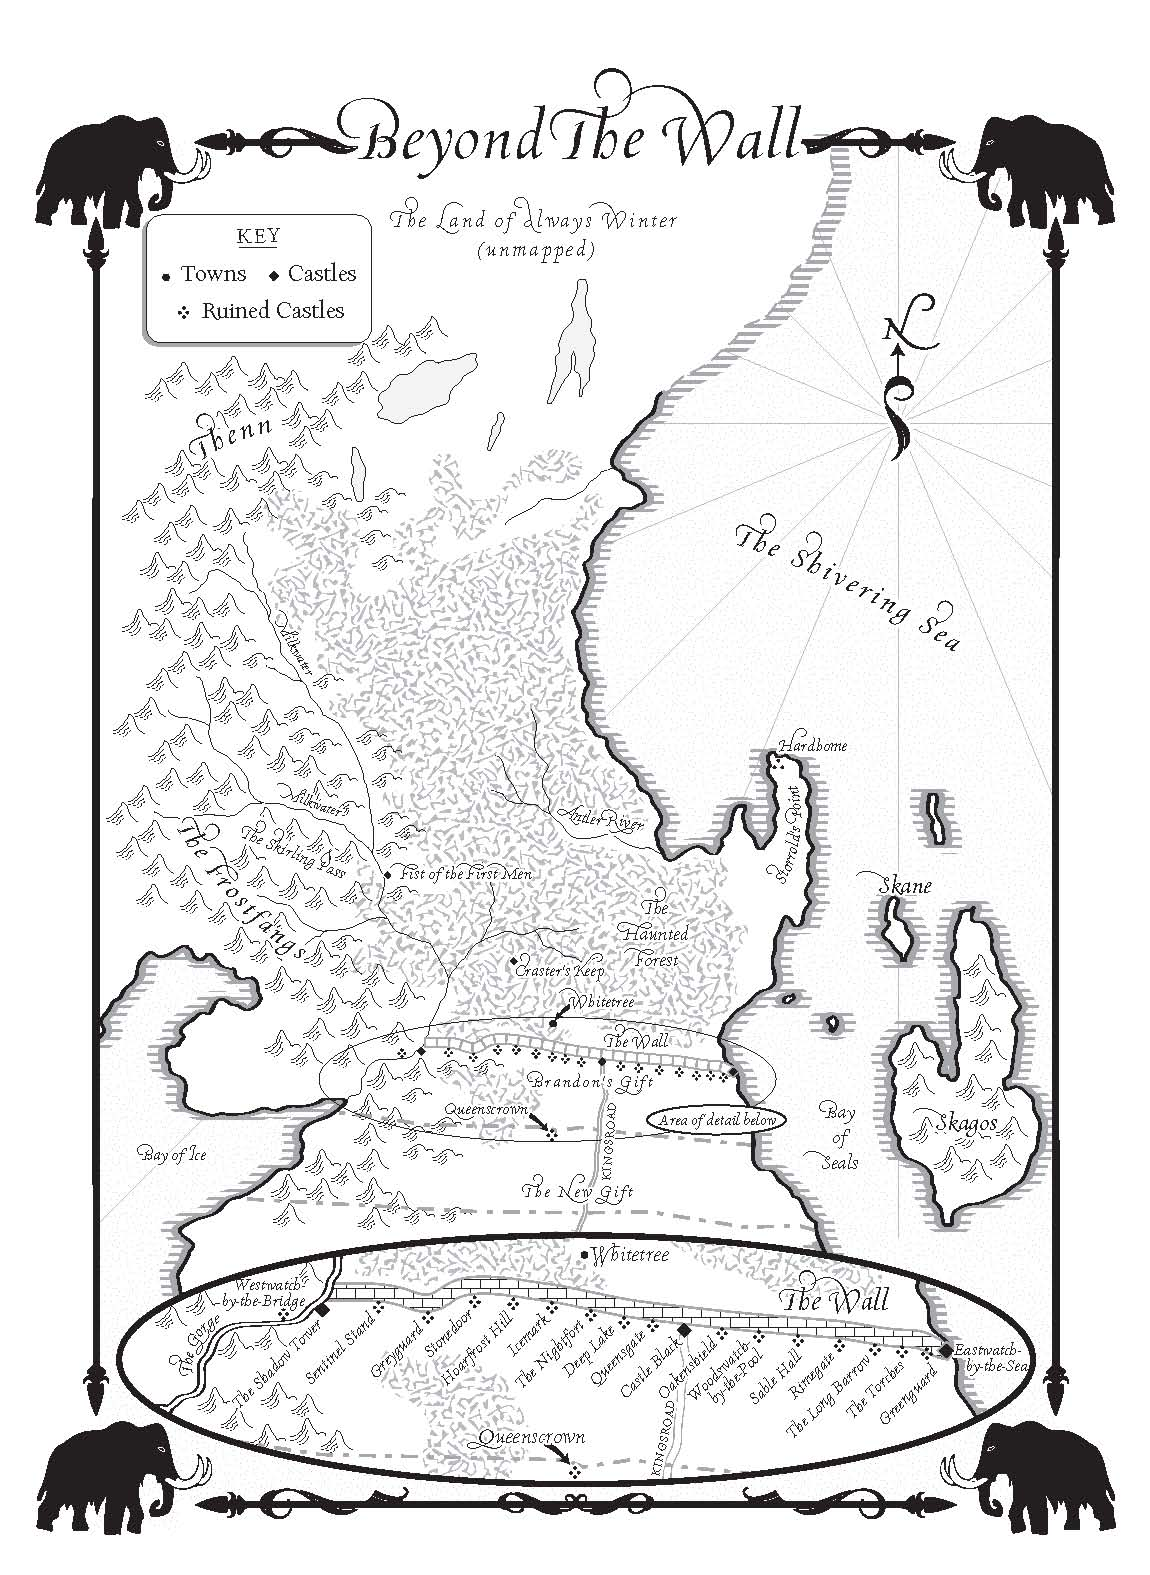 A Dance with Dragons-Map of Beyond The Wall - A Wiki of ...